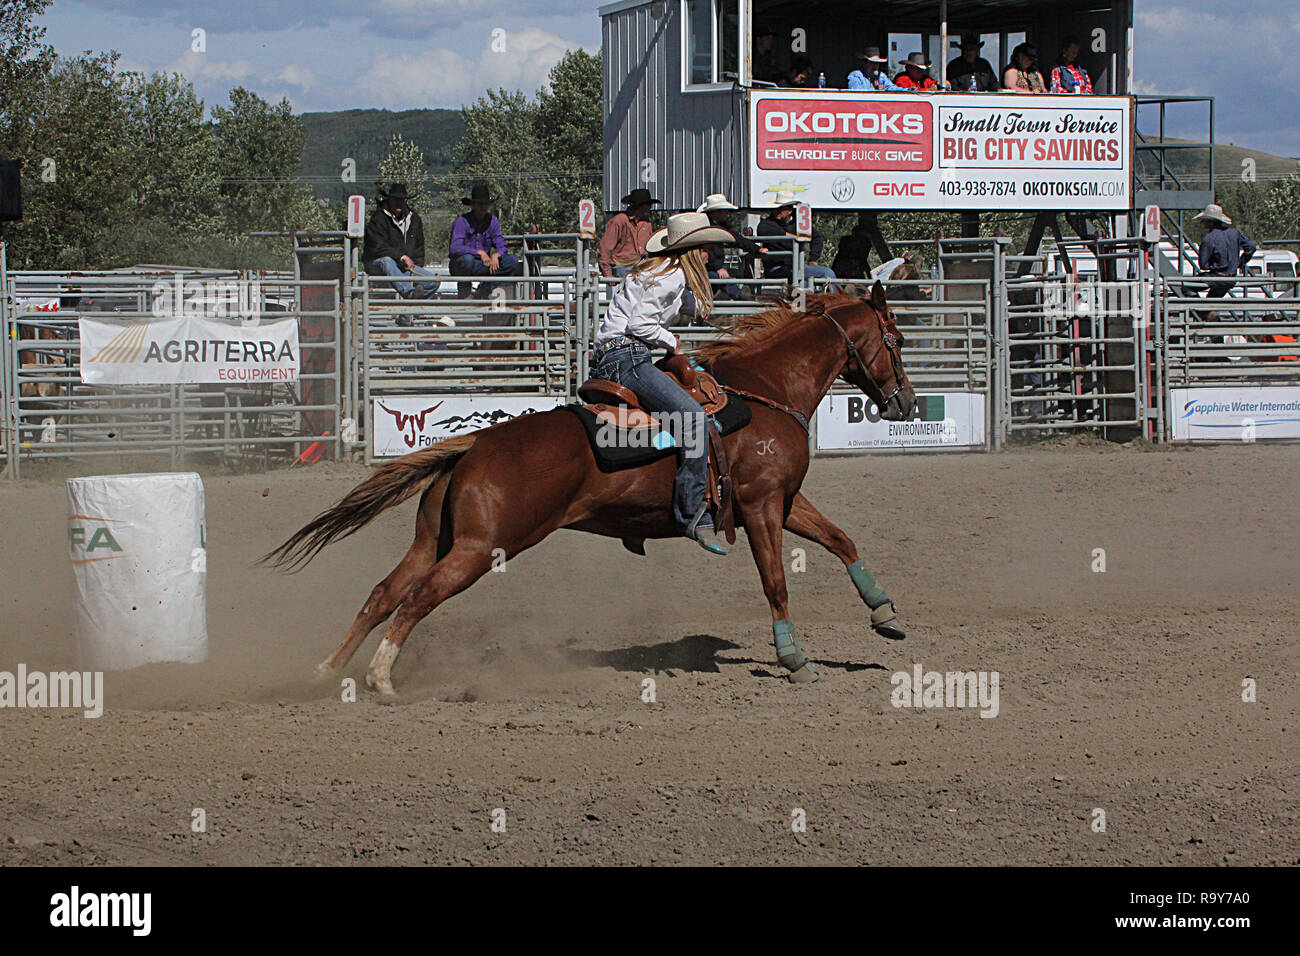 Rodeo, Calgary Stampede, Alberta, Canada, Barrel racing where horse and rider compete in a fast and furious timed event competition. - Stock Image